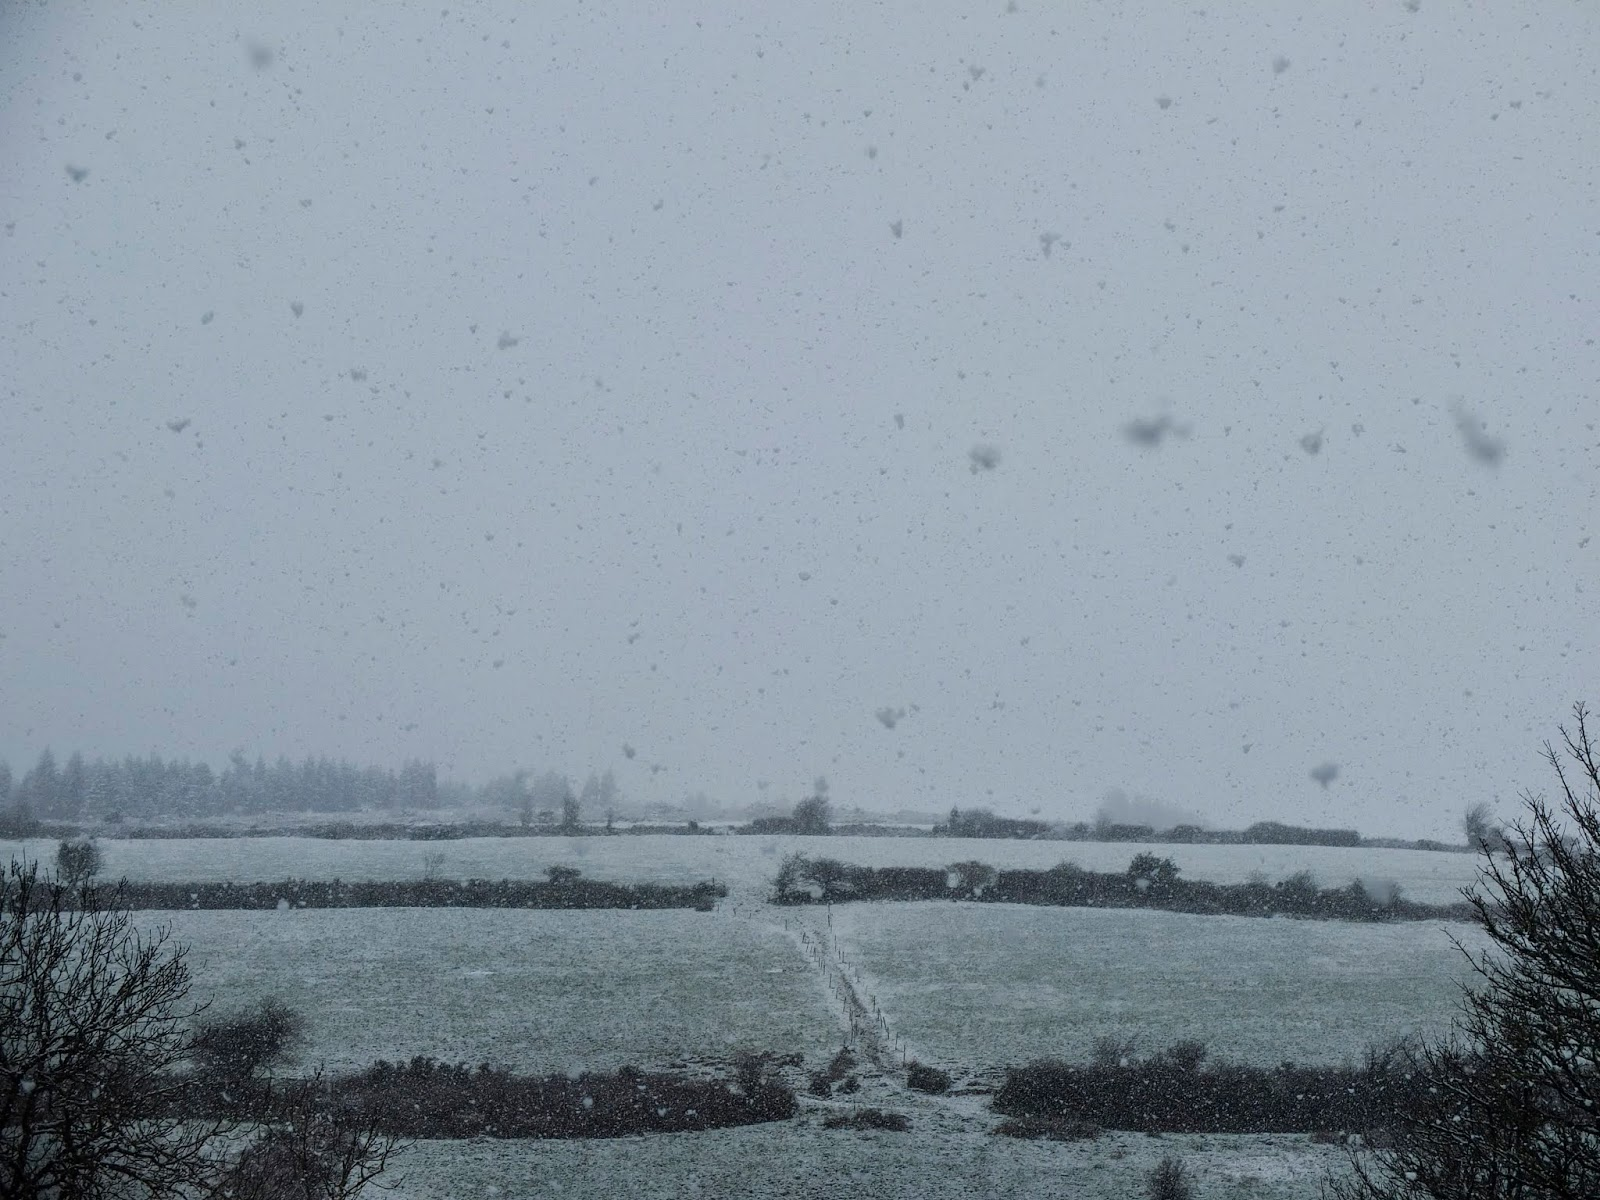 Snowflakes falling from the sky in the Boggeragh Mountains, Co.Cork.